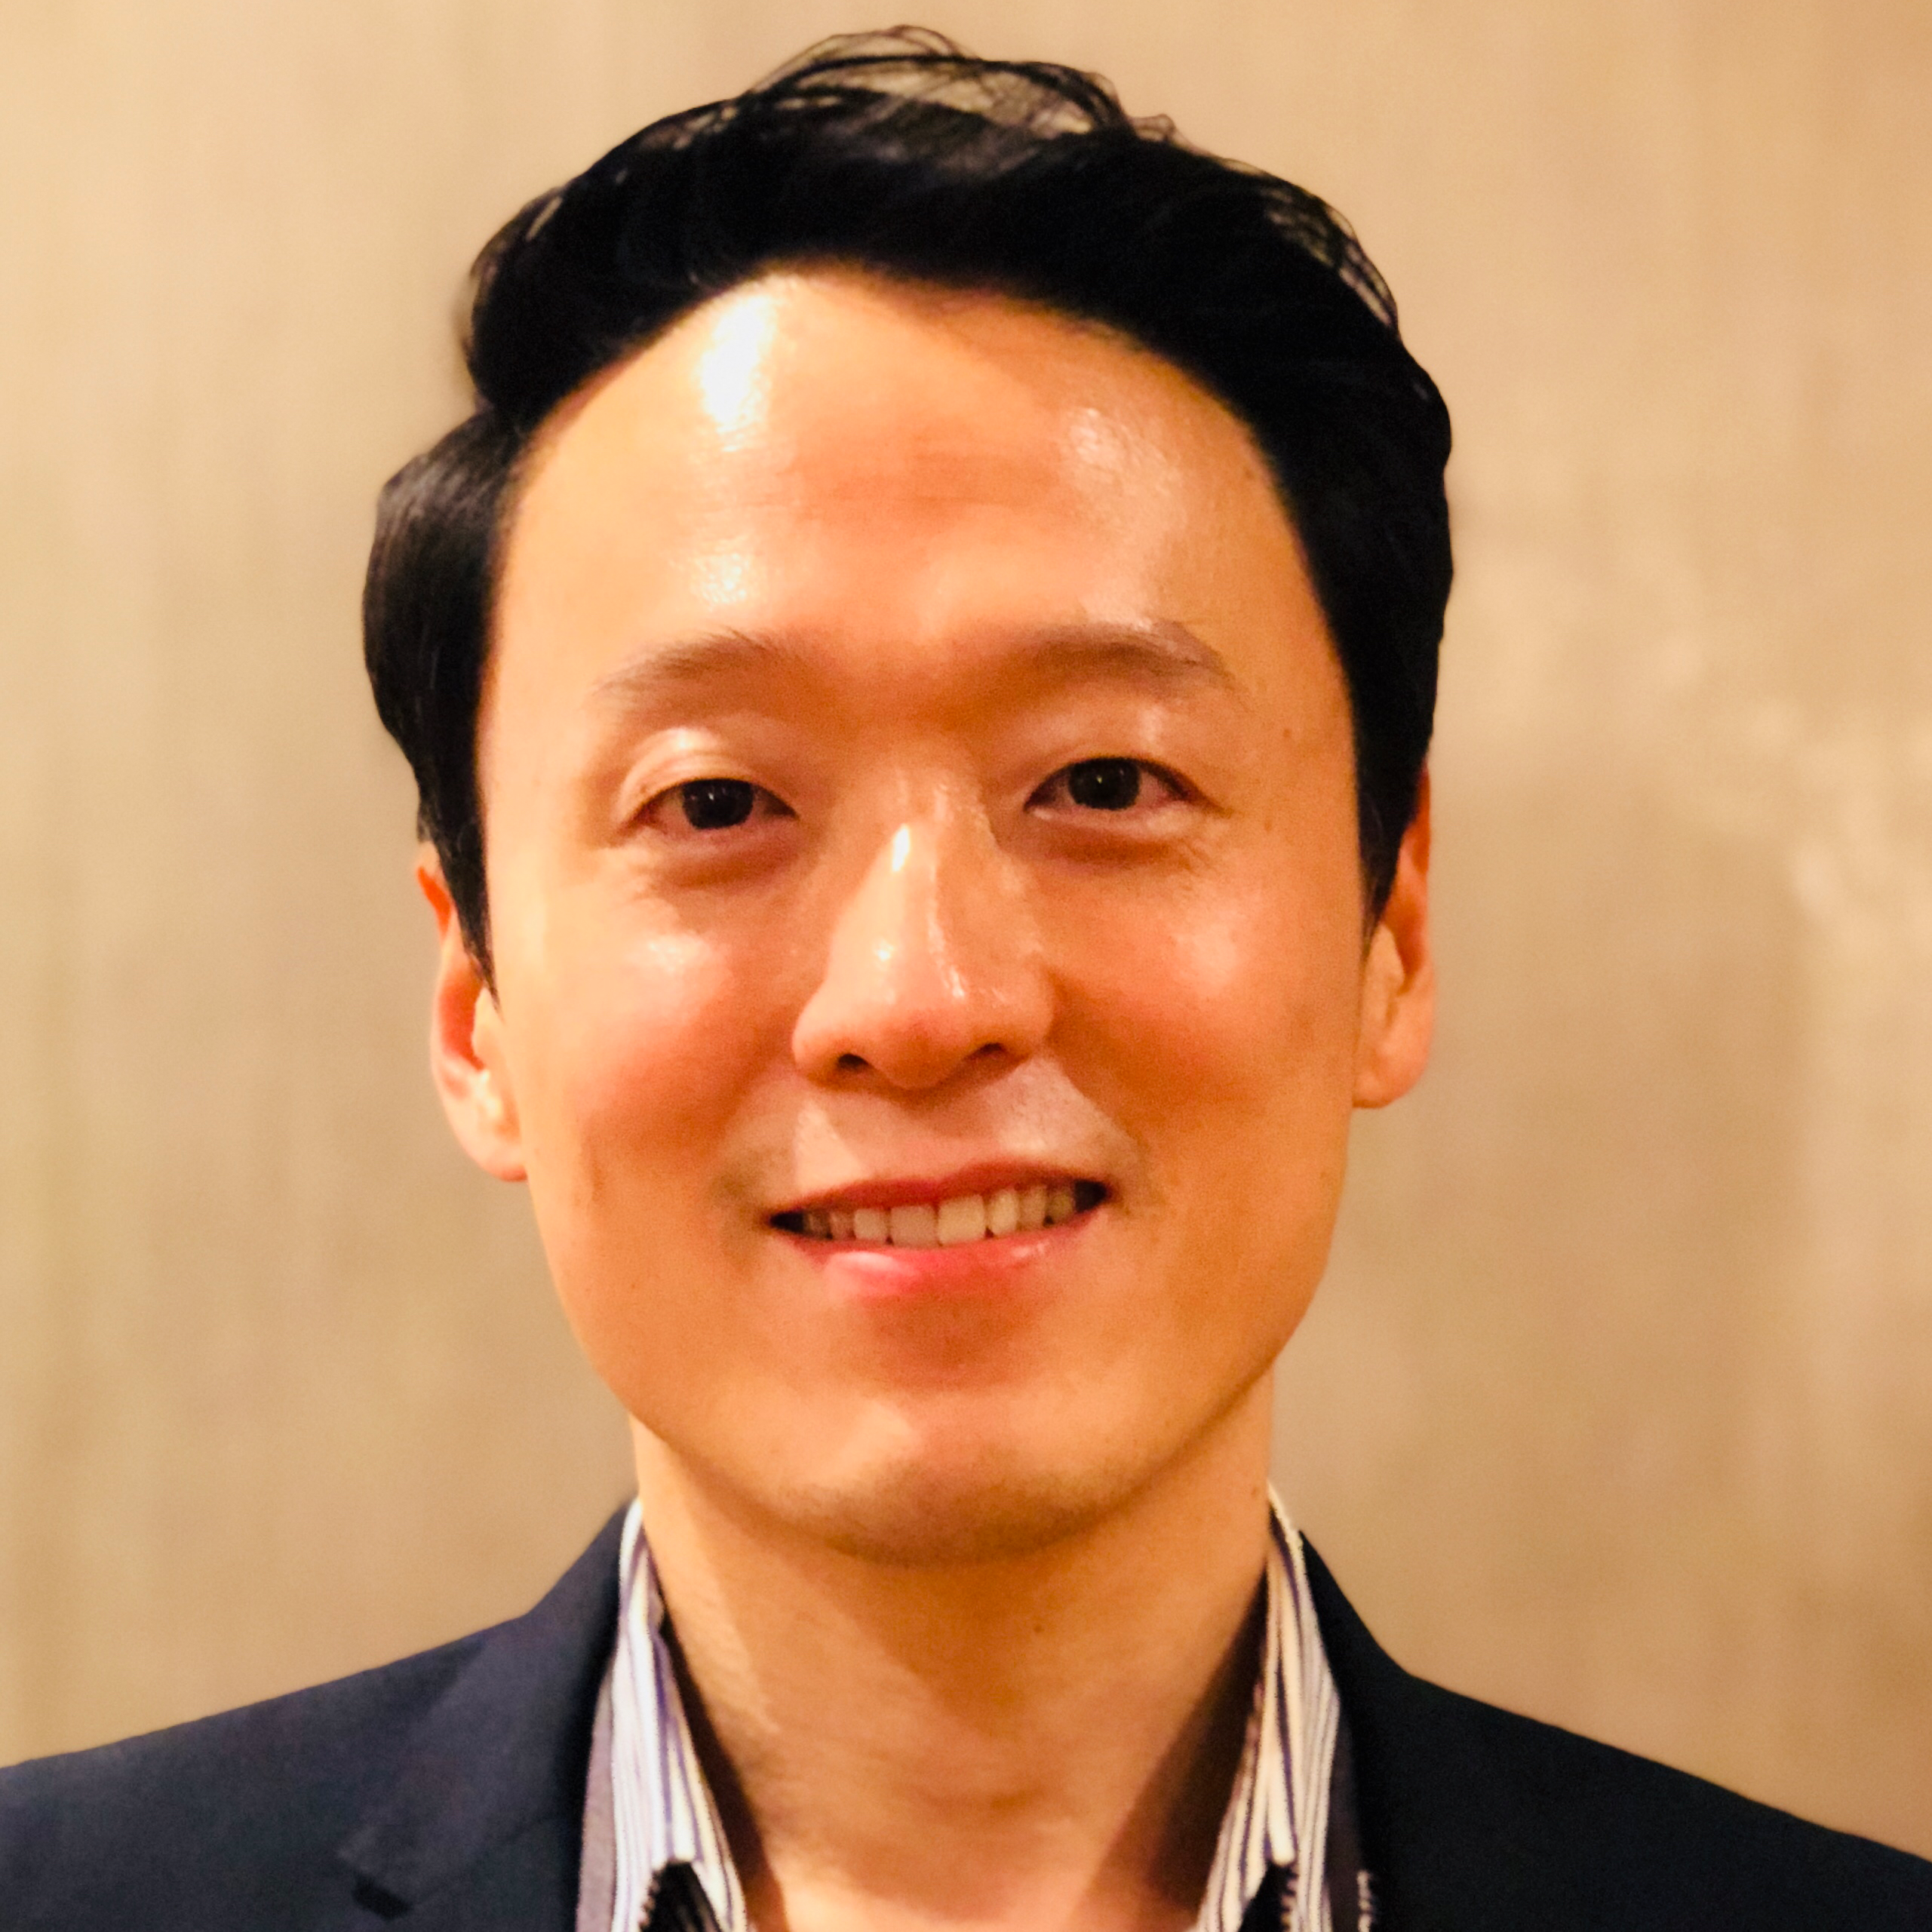 Mr Seimin Kuan, Managing Director, APAC at Wirex